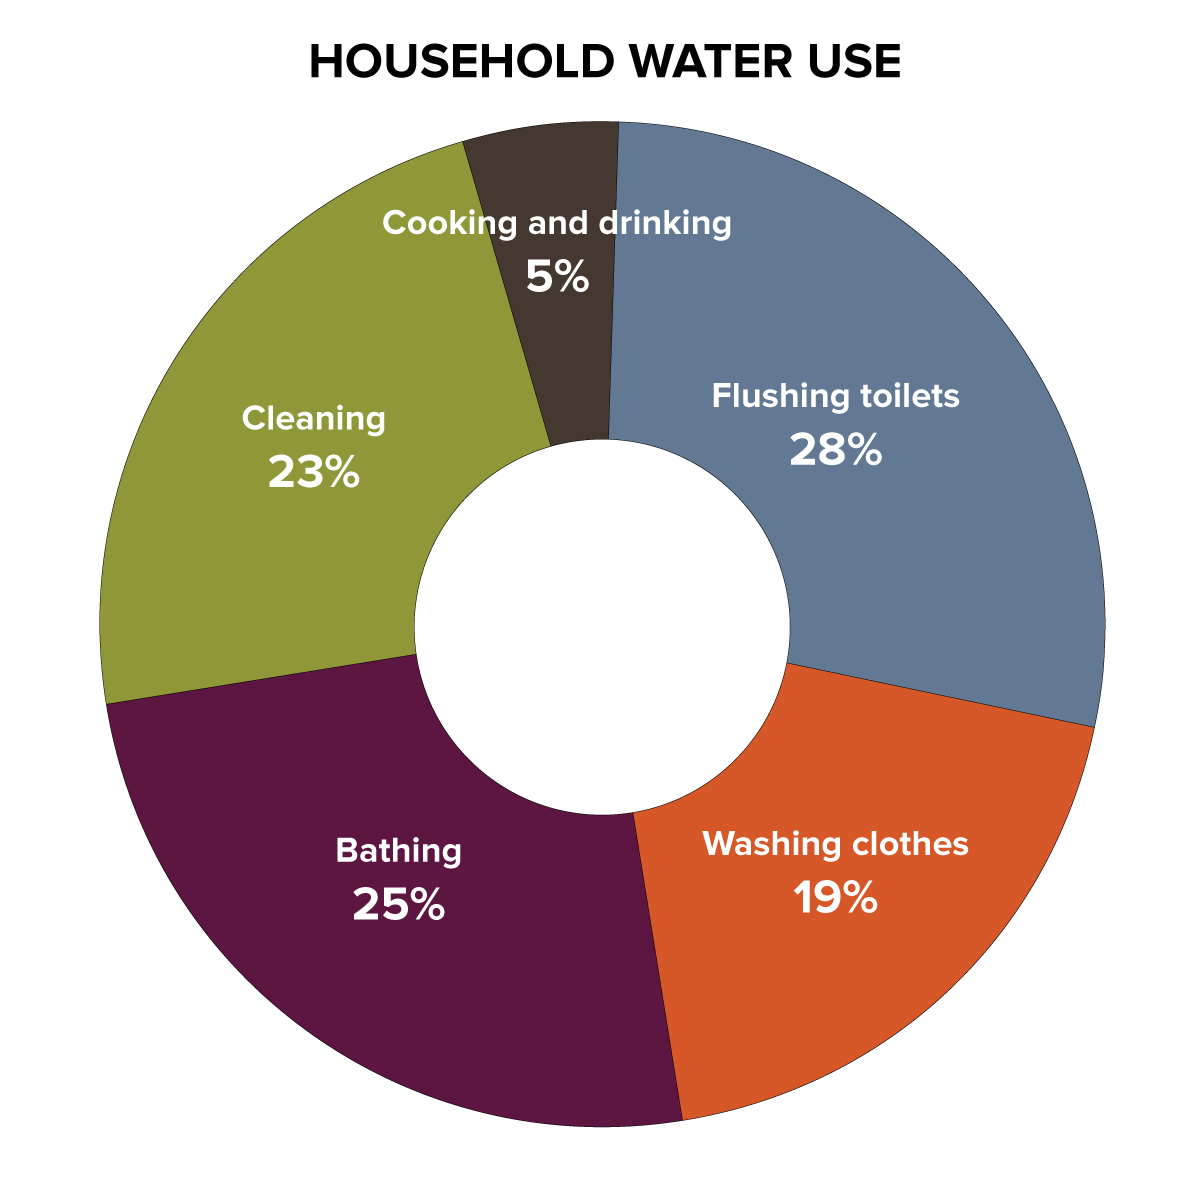 Modified pie chart that breaks household water into these categories and percentages: Flushing toilet 28%, Washing clothes 19%, Bathing 25%, Cleaning 23%, and Cooking & Drinking 5%.